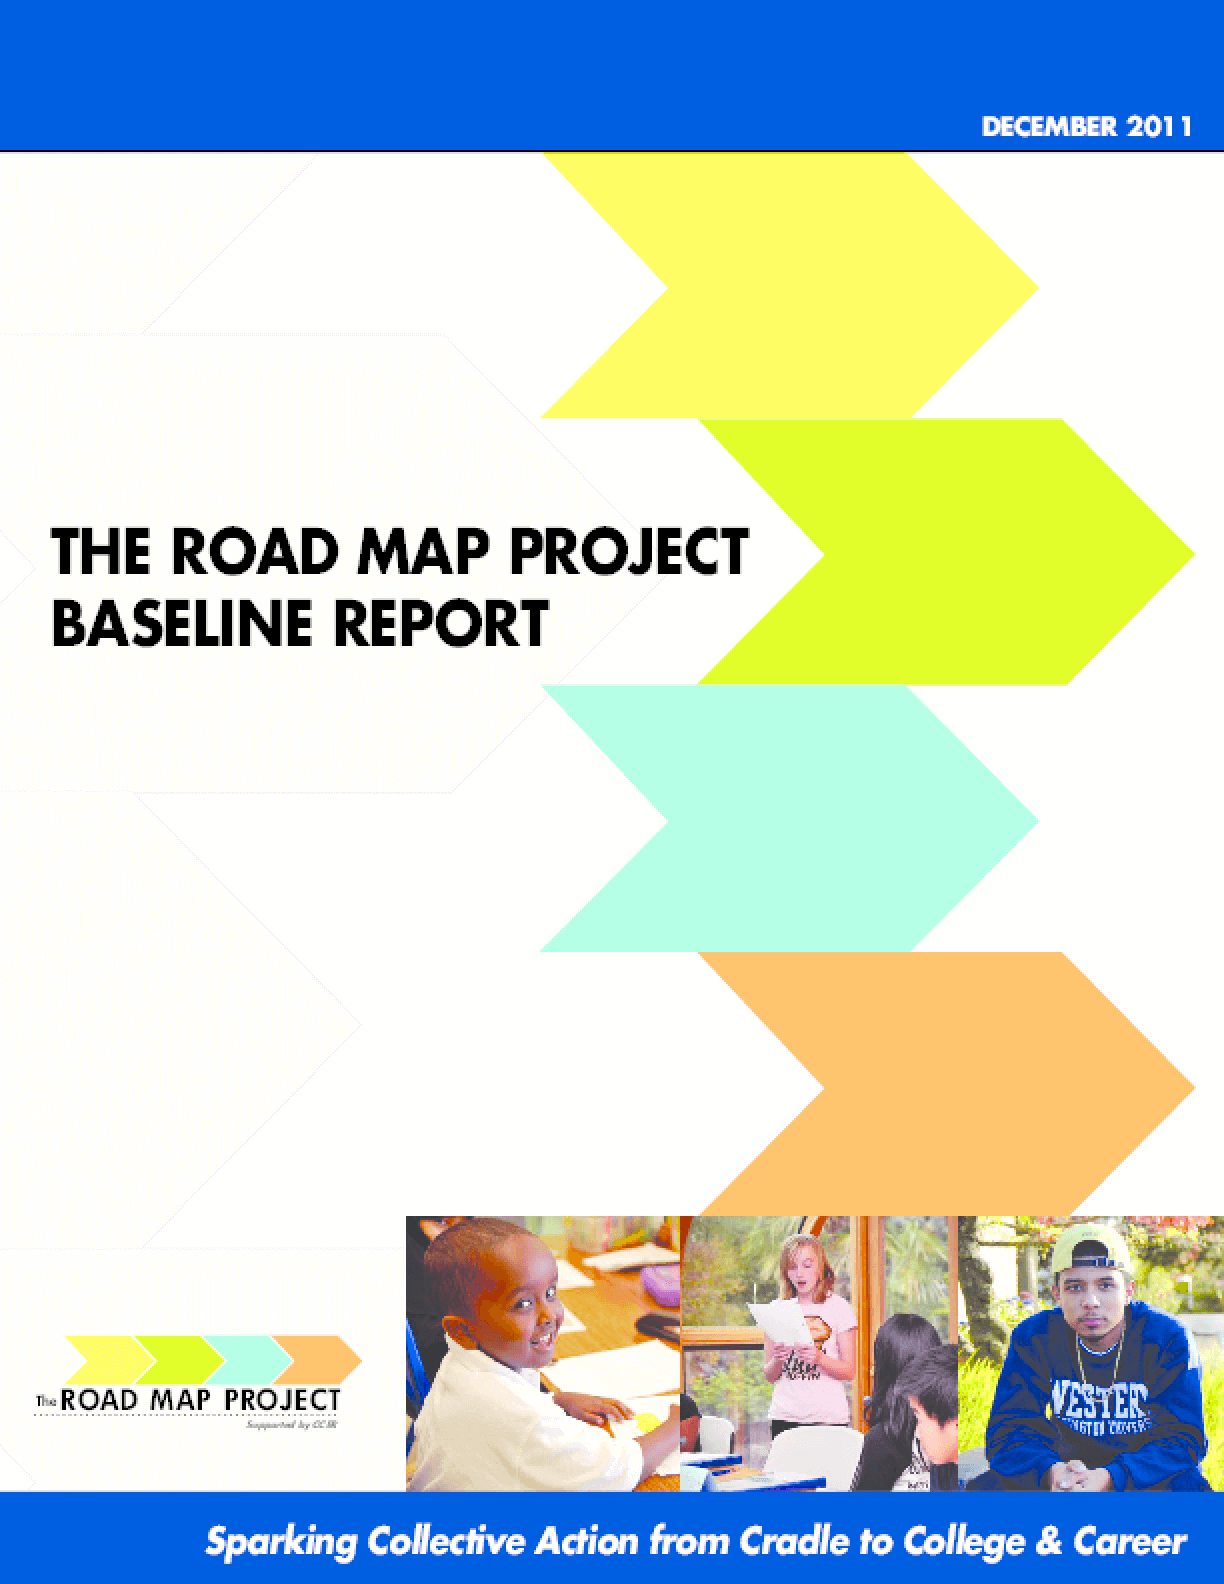 The Road Map Project Baseline Report